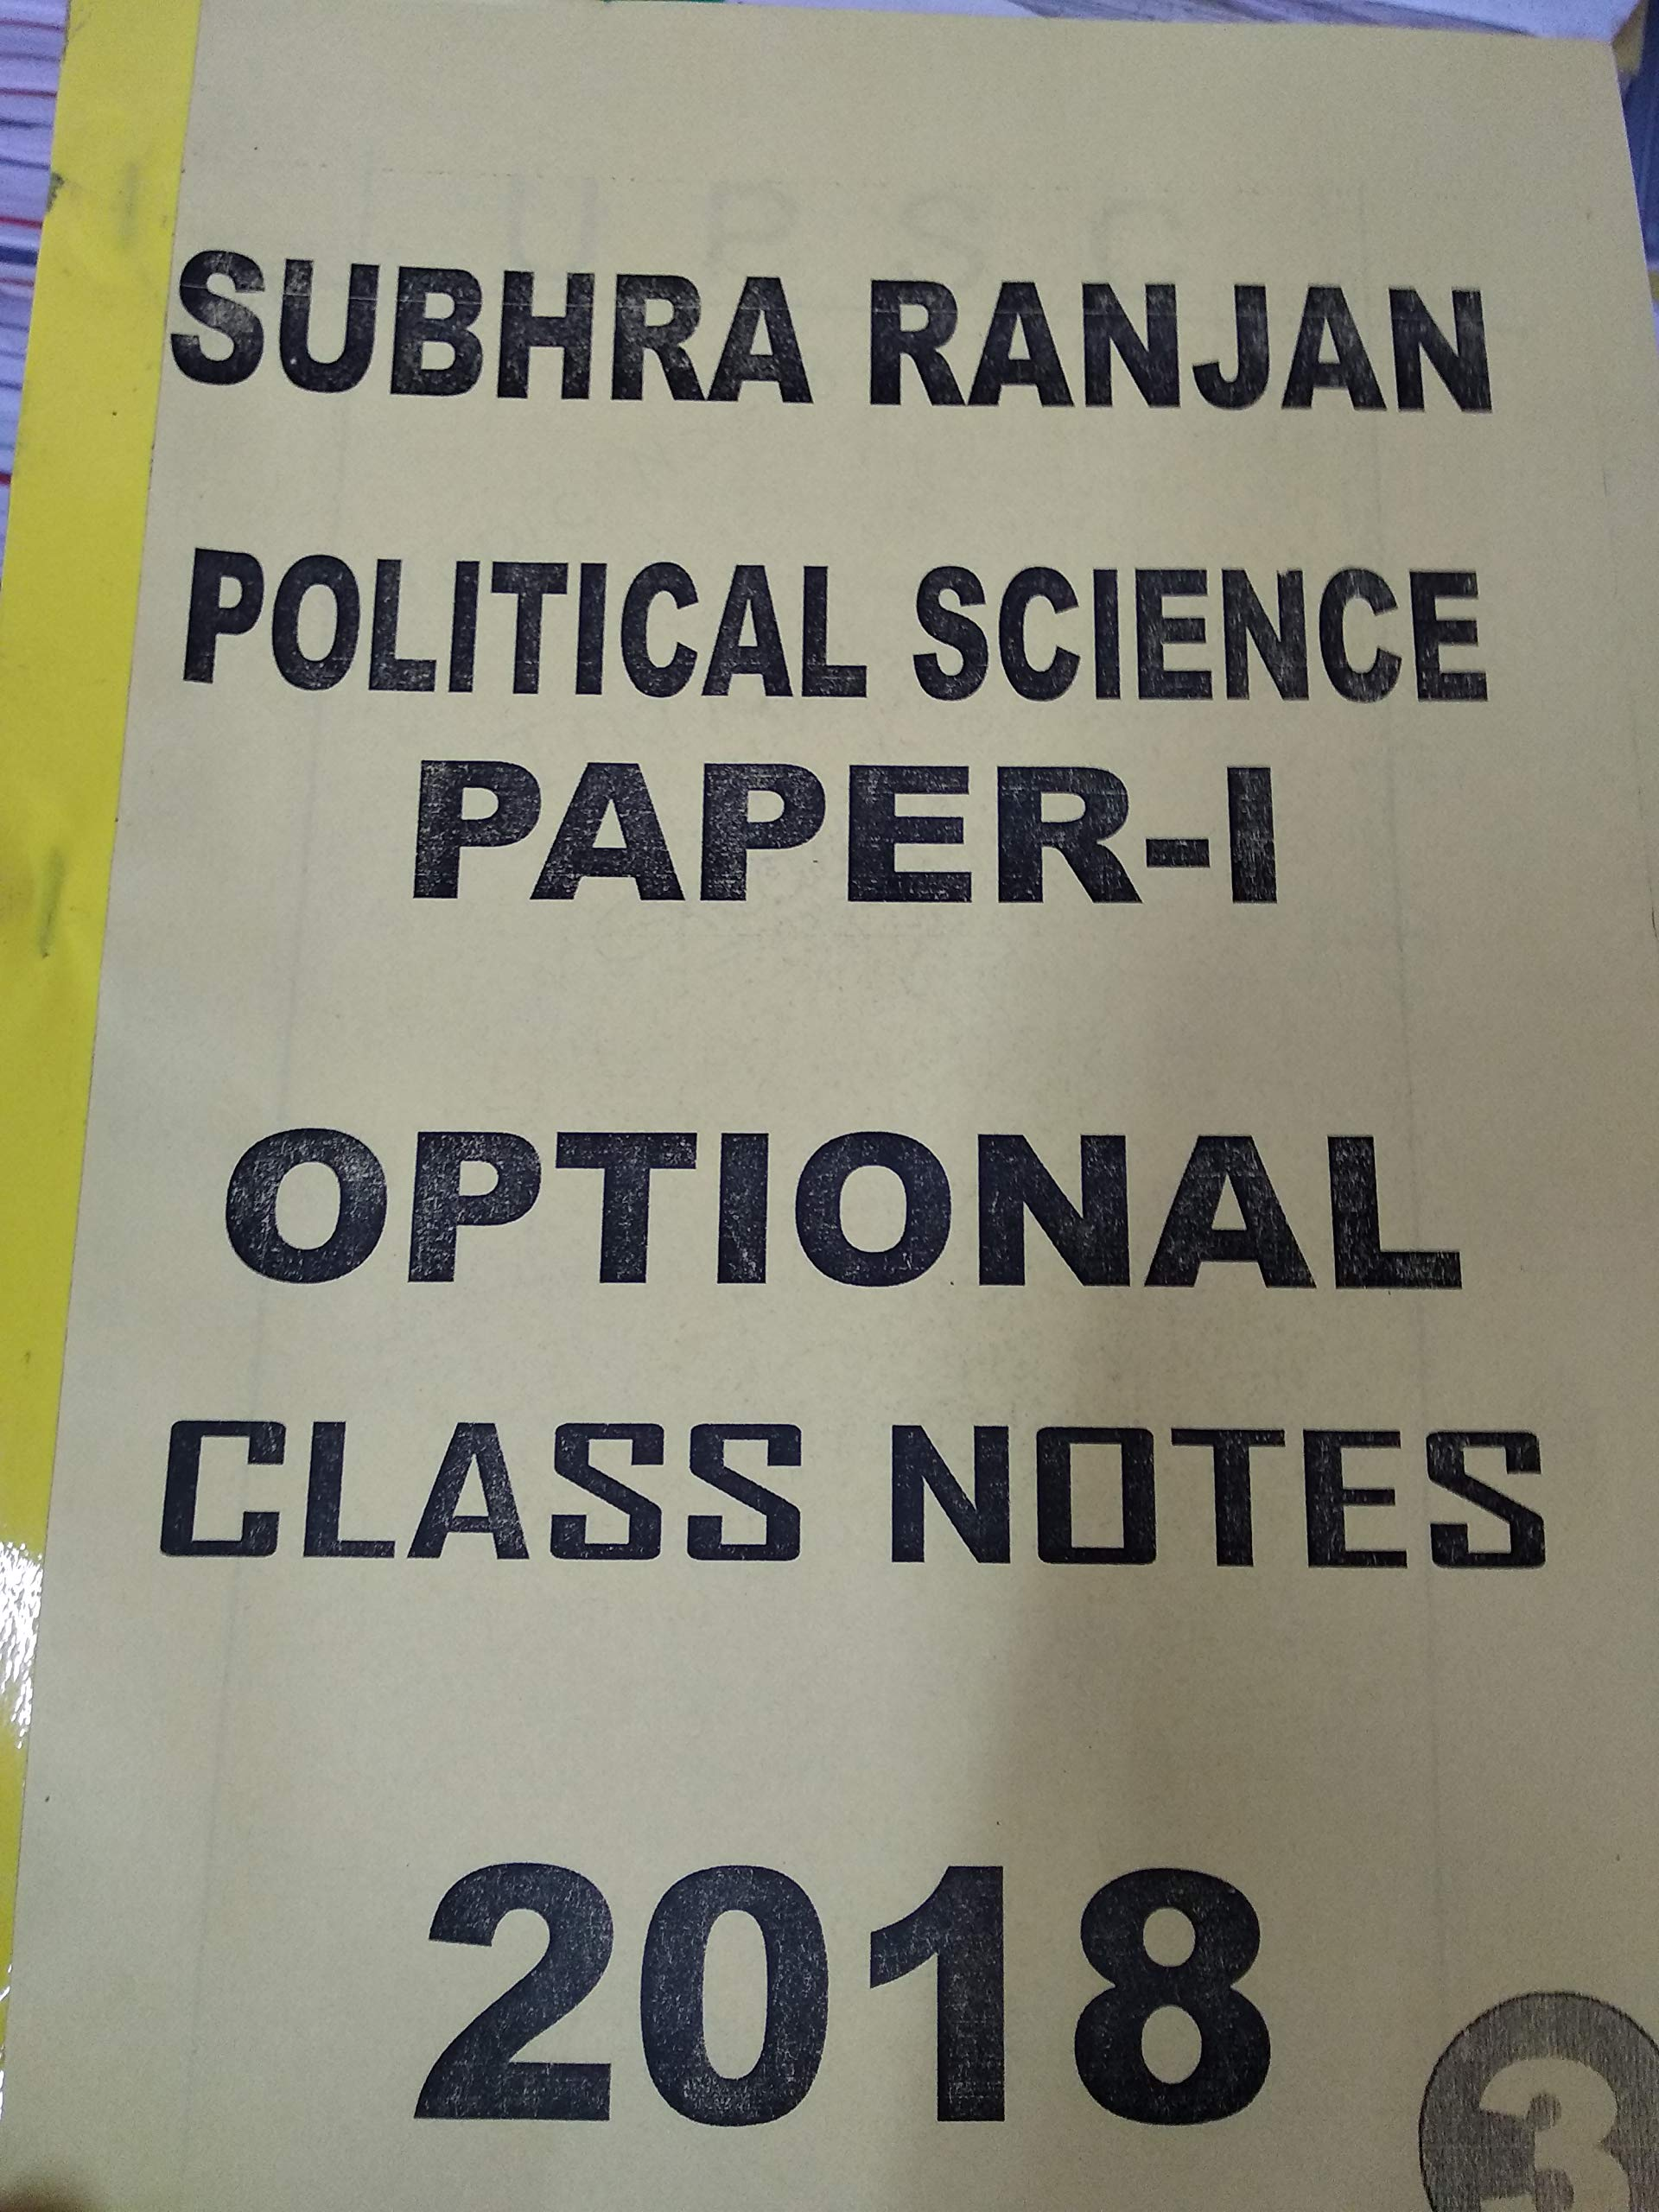 Shubhra Ranjan's Political Science Latest Class Notes 2018